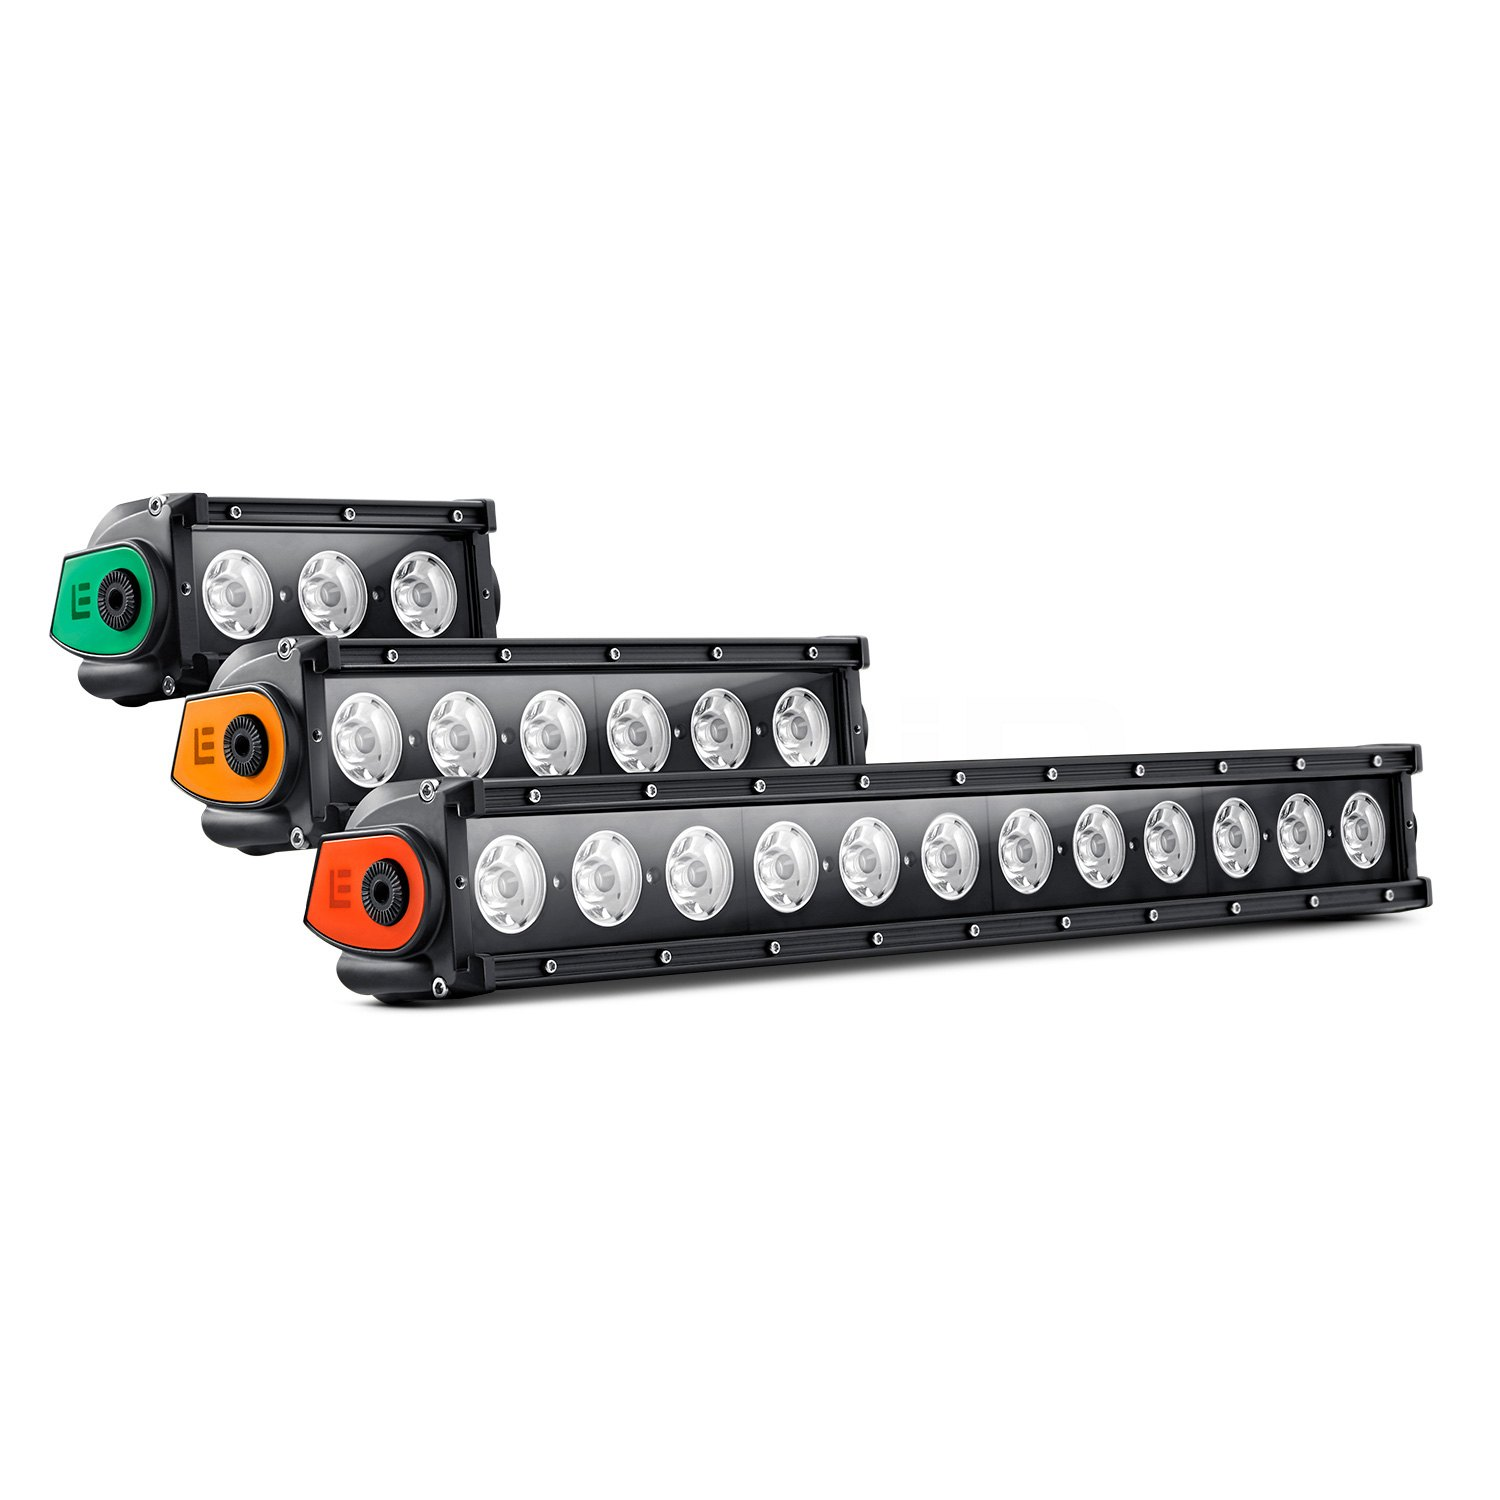 Lumen single row led light bar with illuminated end caps lumen single row led light bar with illuminated end caps 6 aloadofball Images